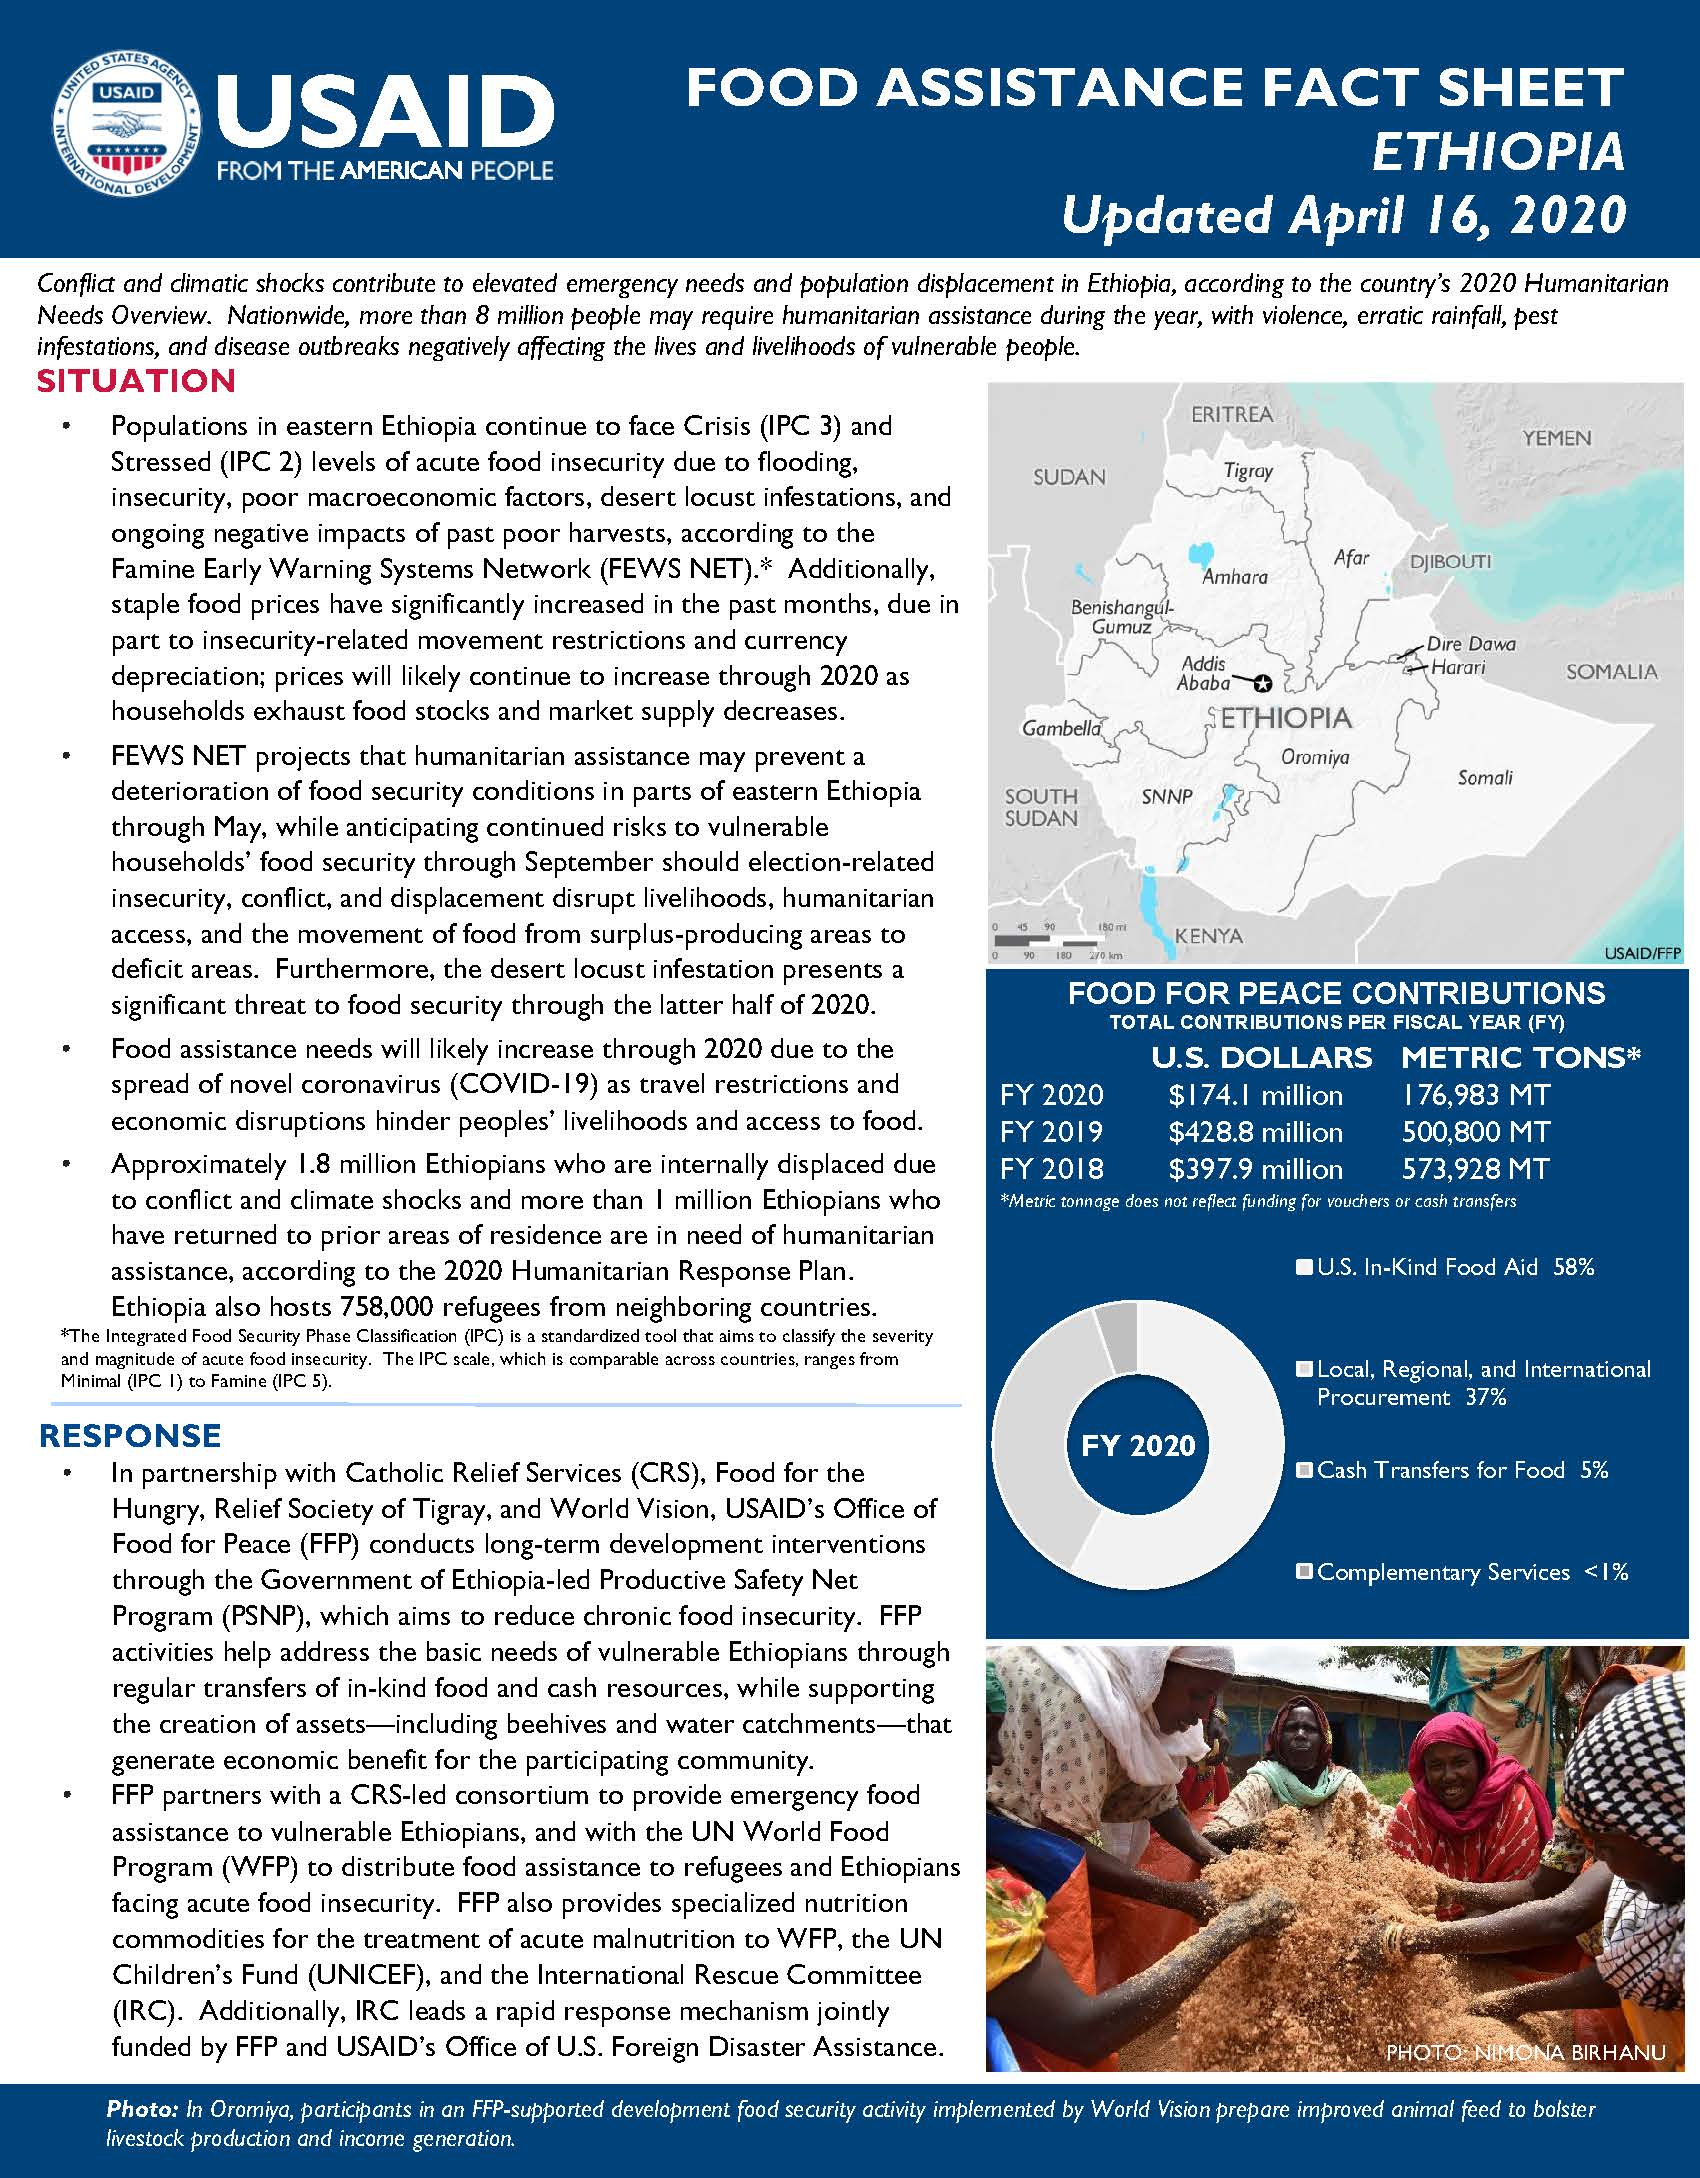 Food Assistance Fact Sheet - Ethiopia